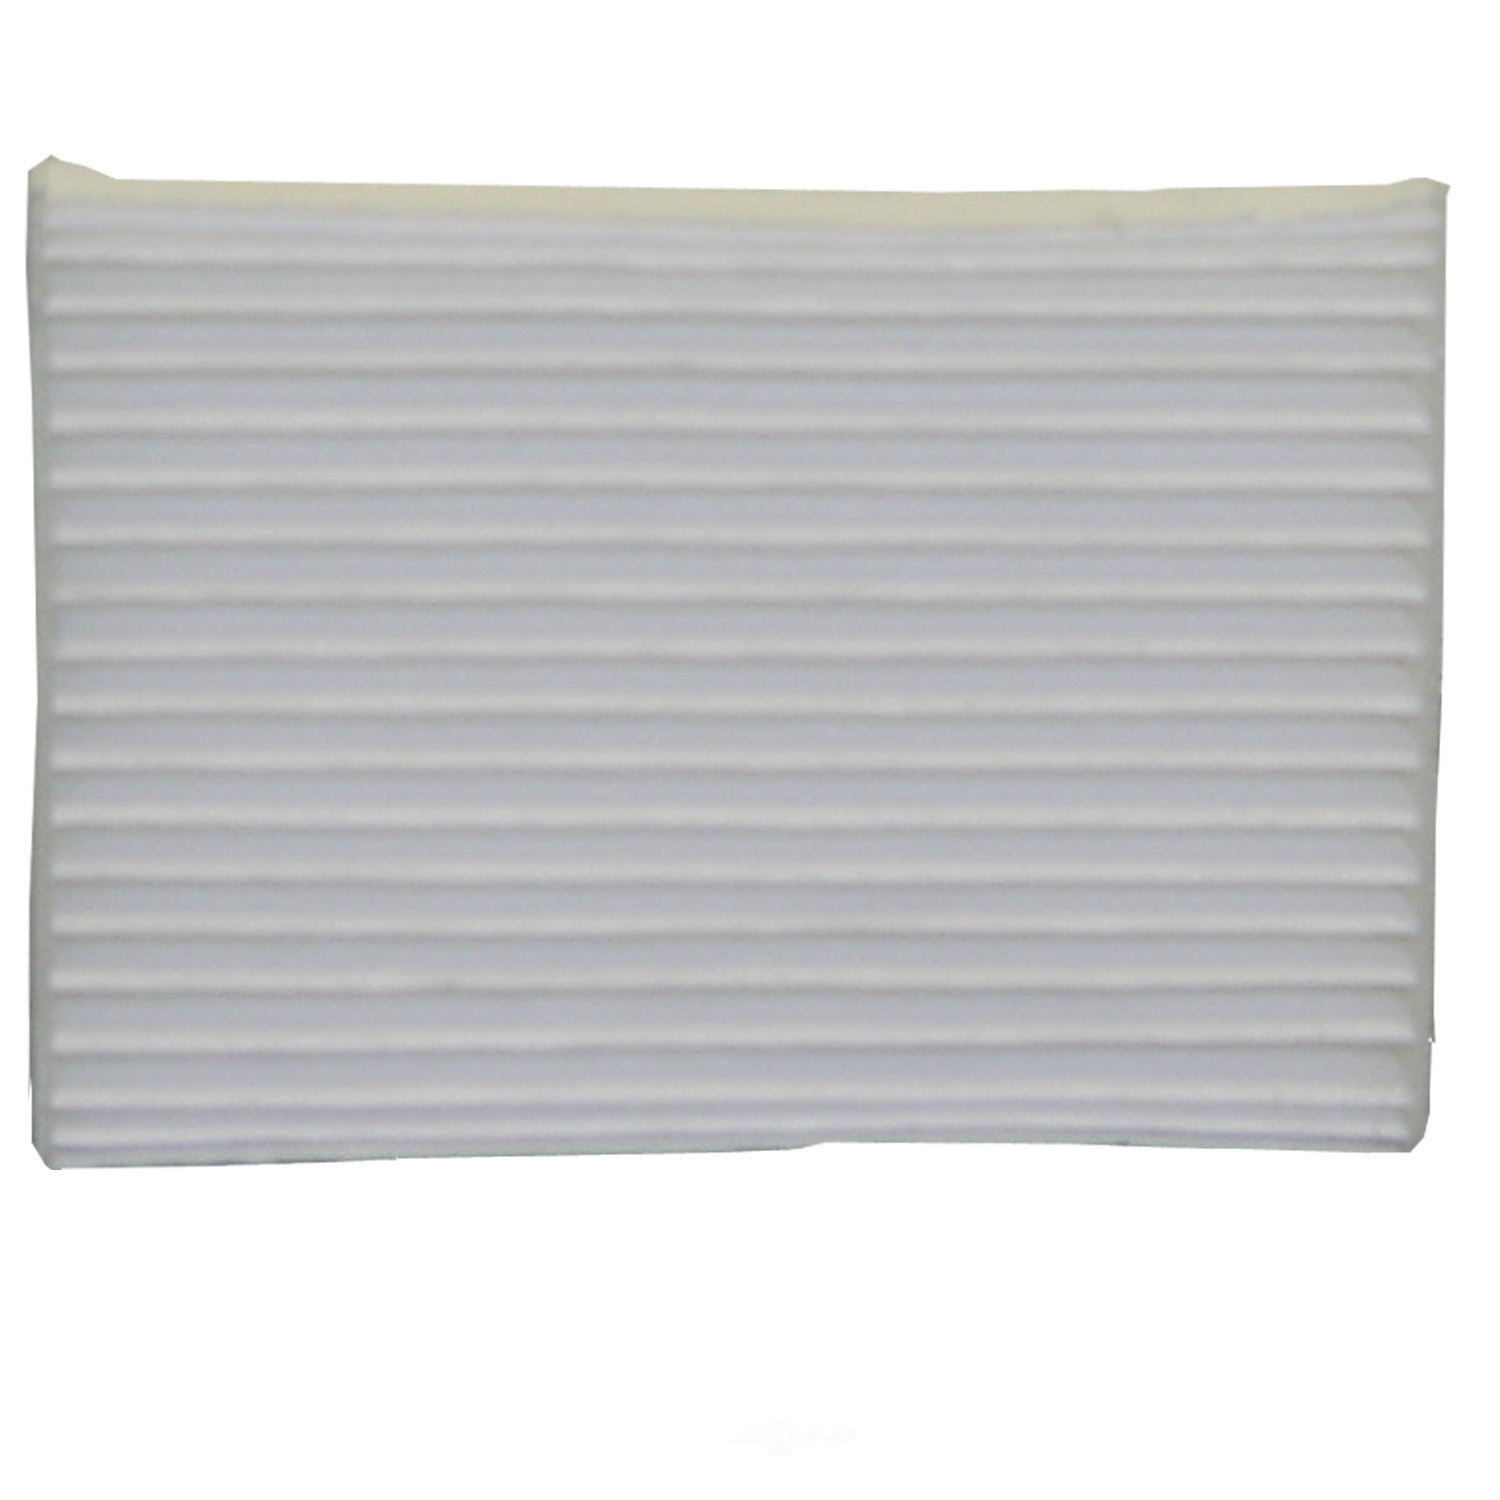 ACDELCO PROFESSIONAL - Cabin Air Filter - DCC CF2229